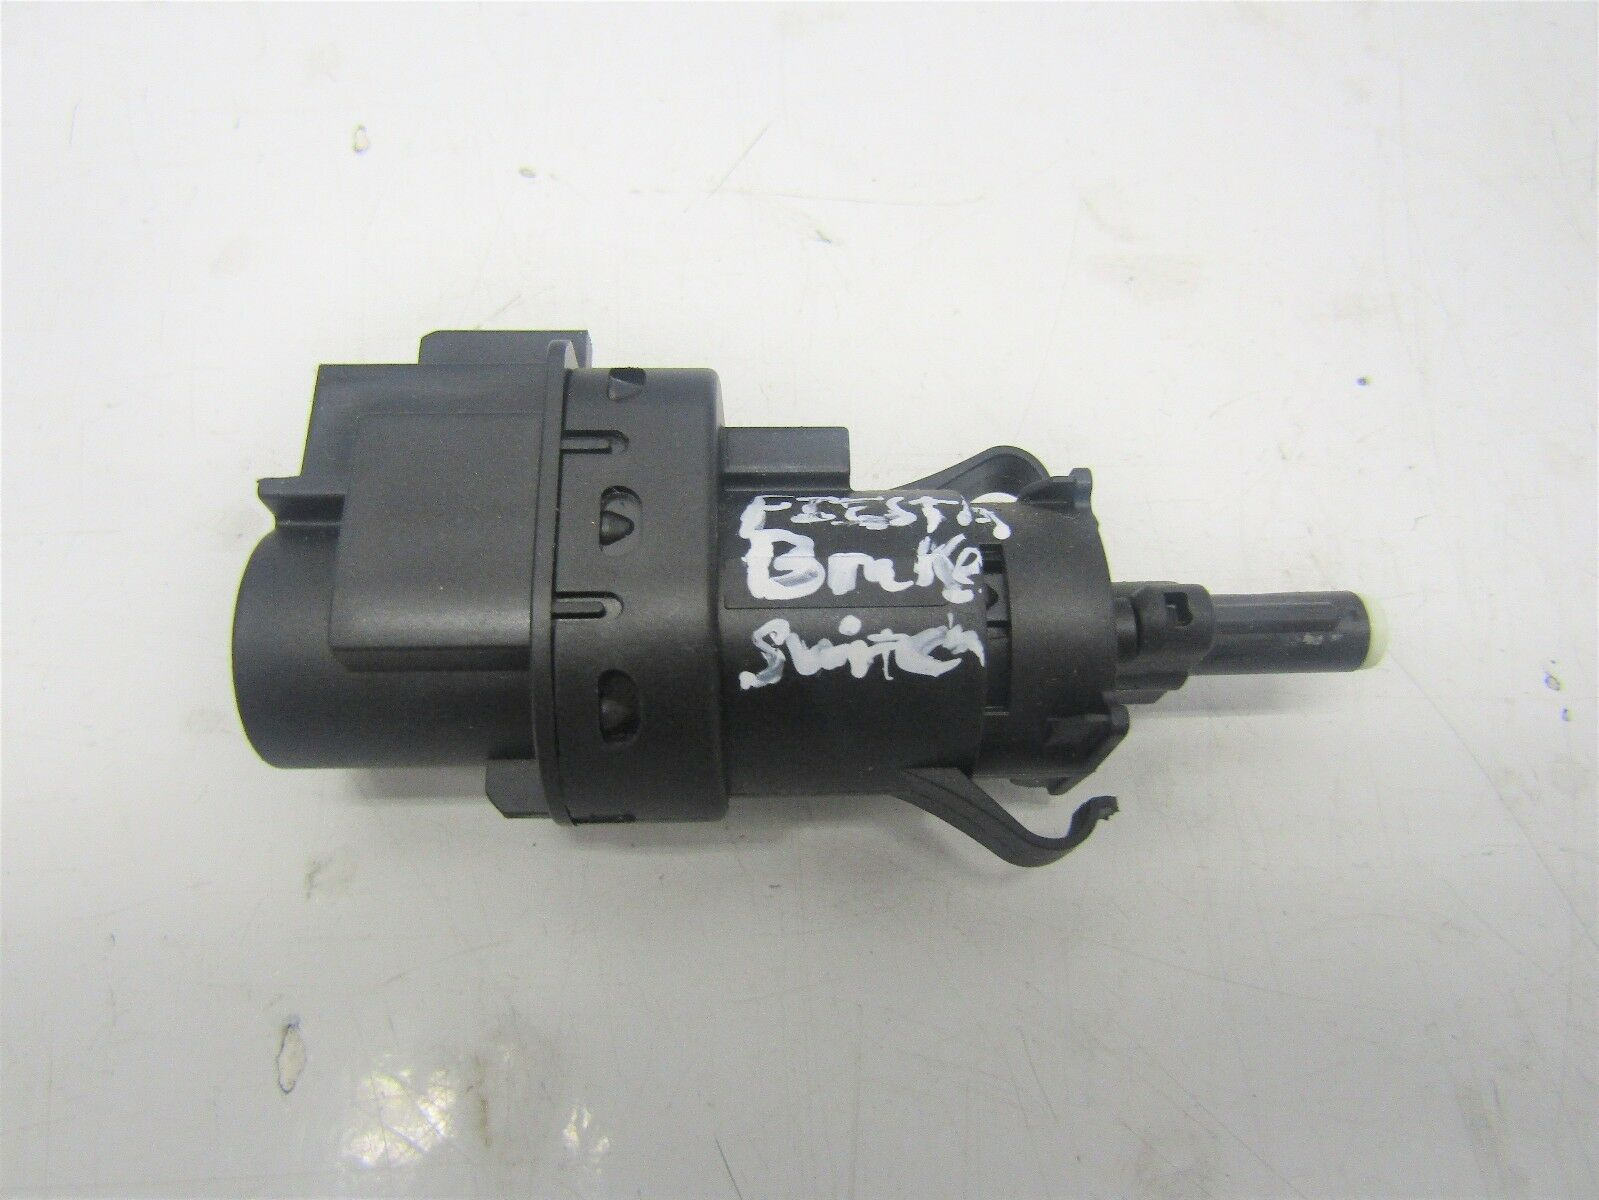 FORD FIESTA MK7 2008-12 BRAKE SWITCH 3M5T-13480-AC                        #6019V